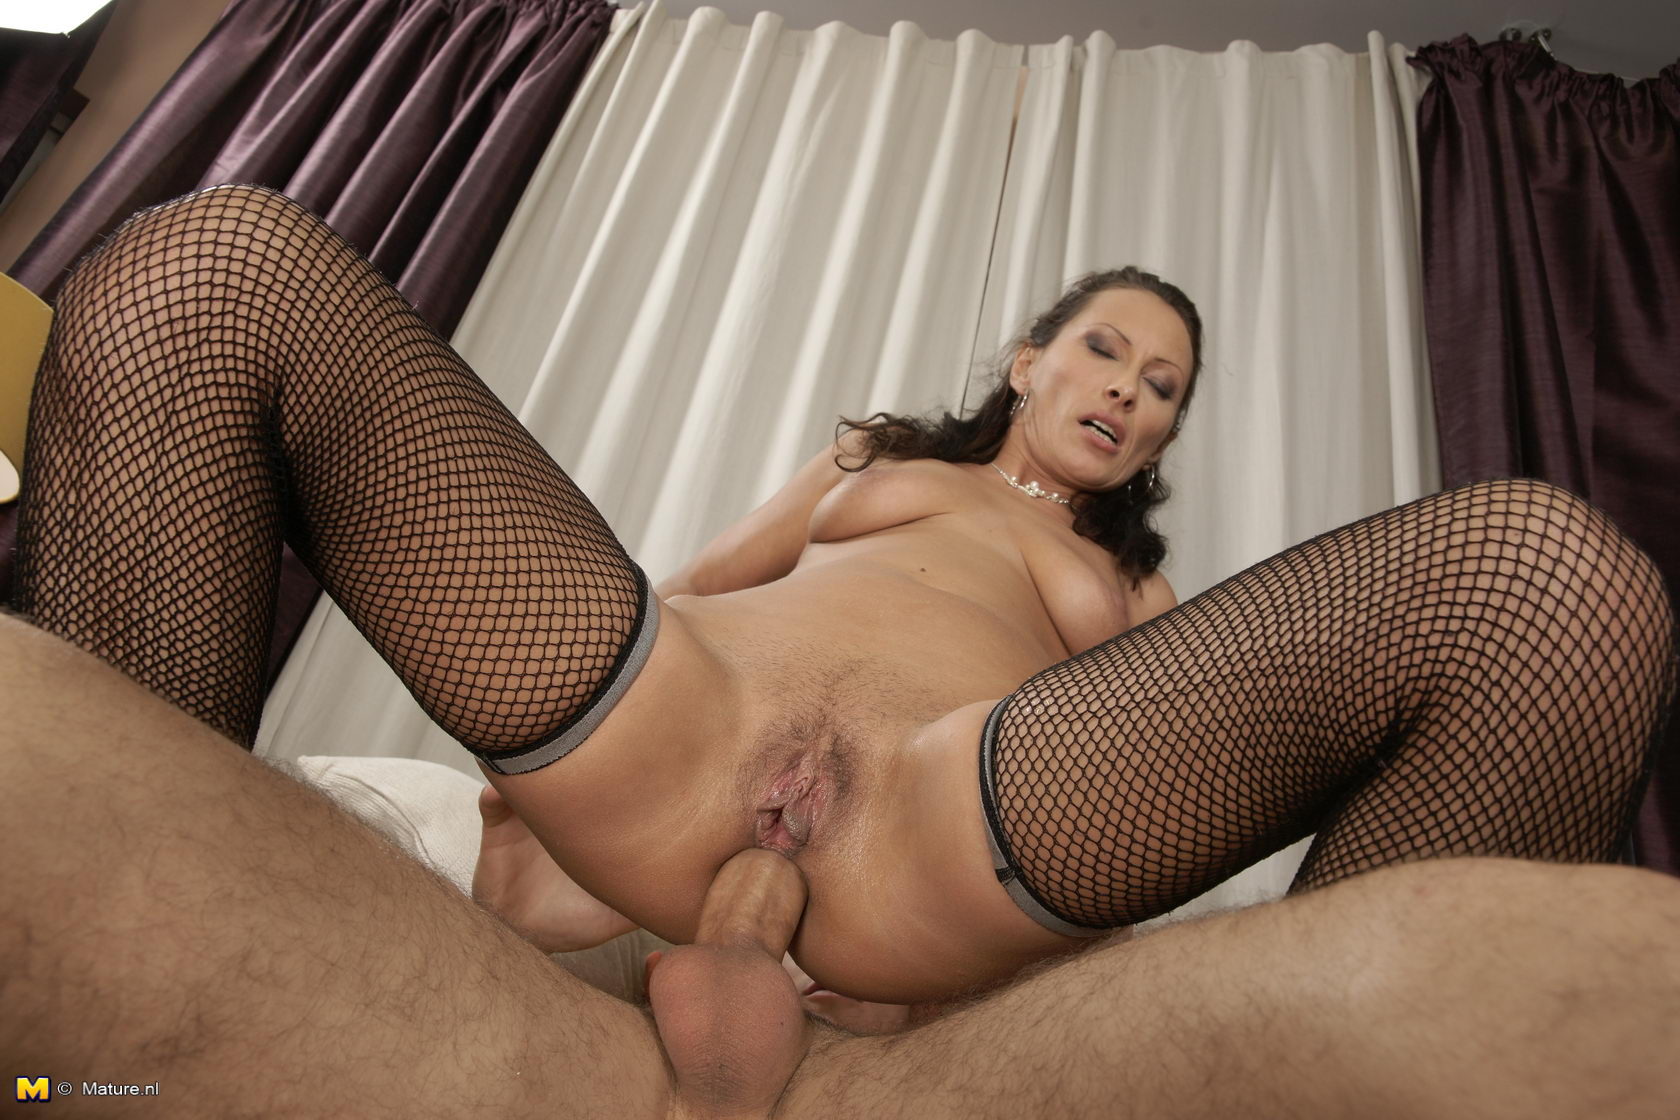 Hot XXX milf anal mature gallery archives hot, but